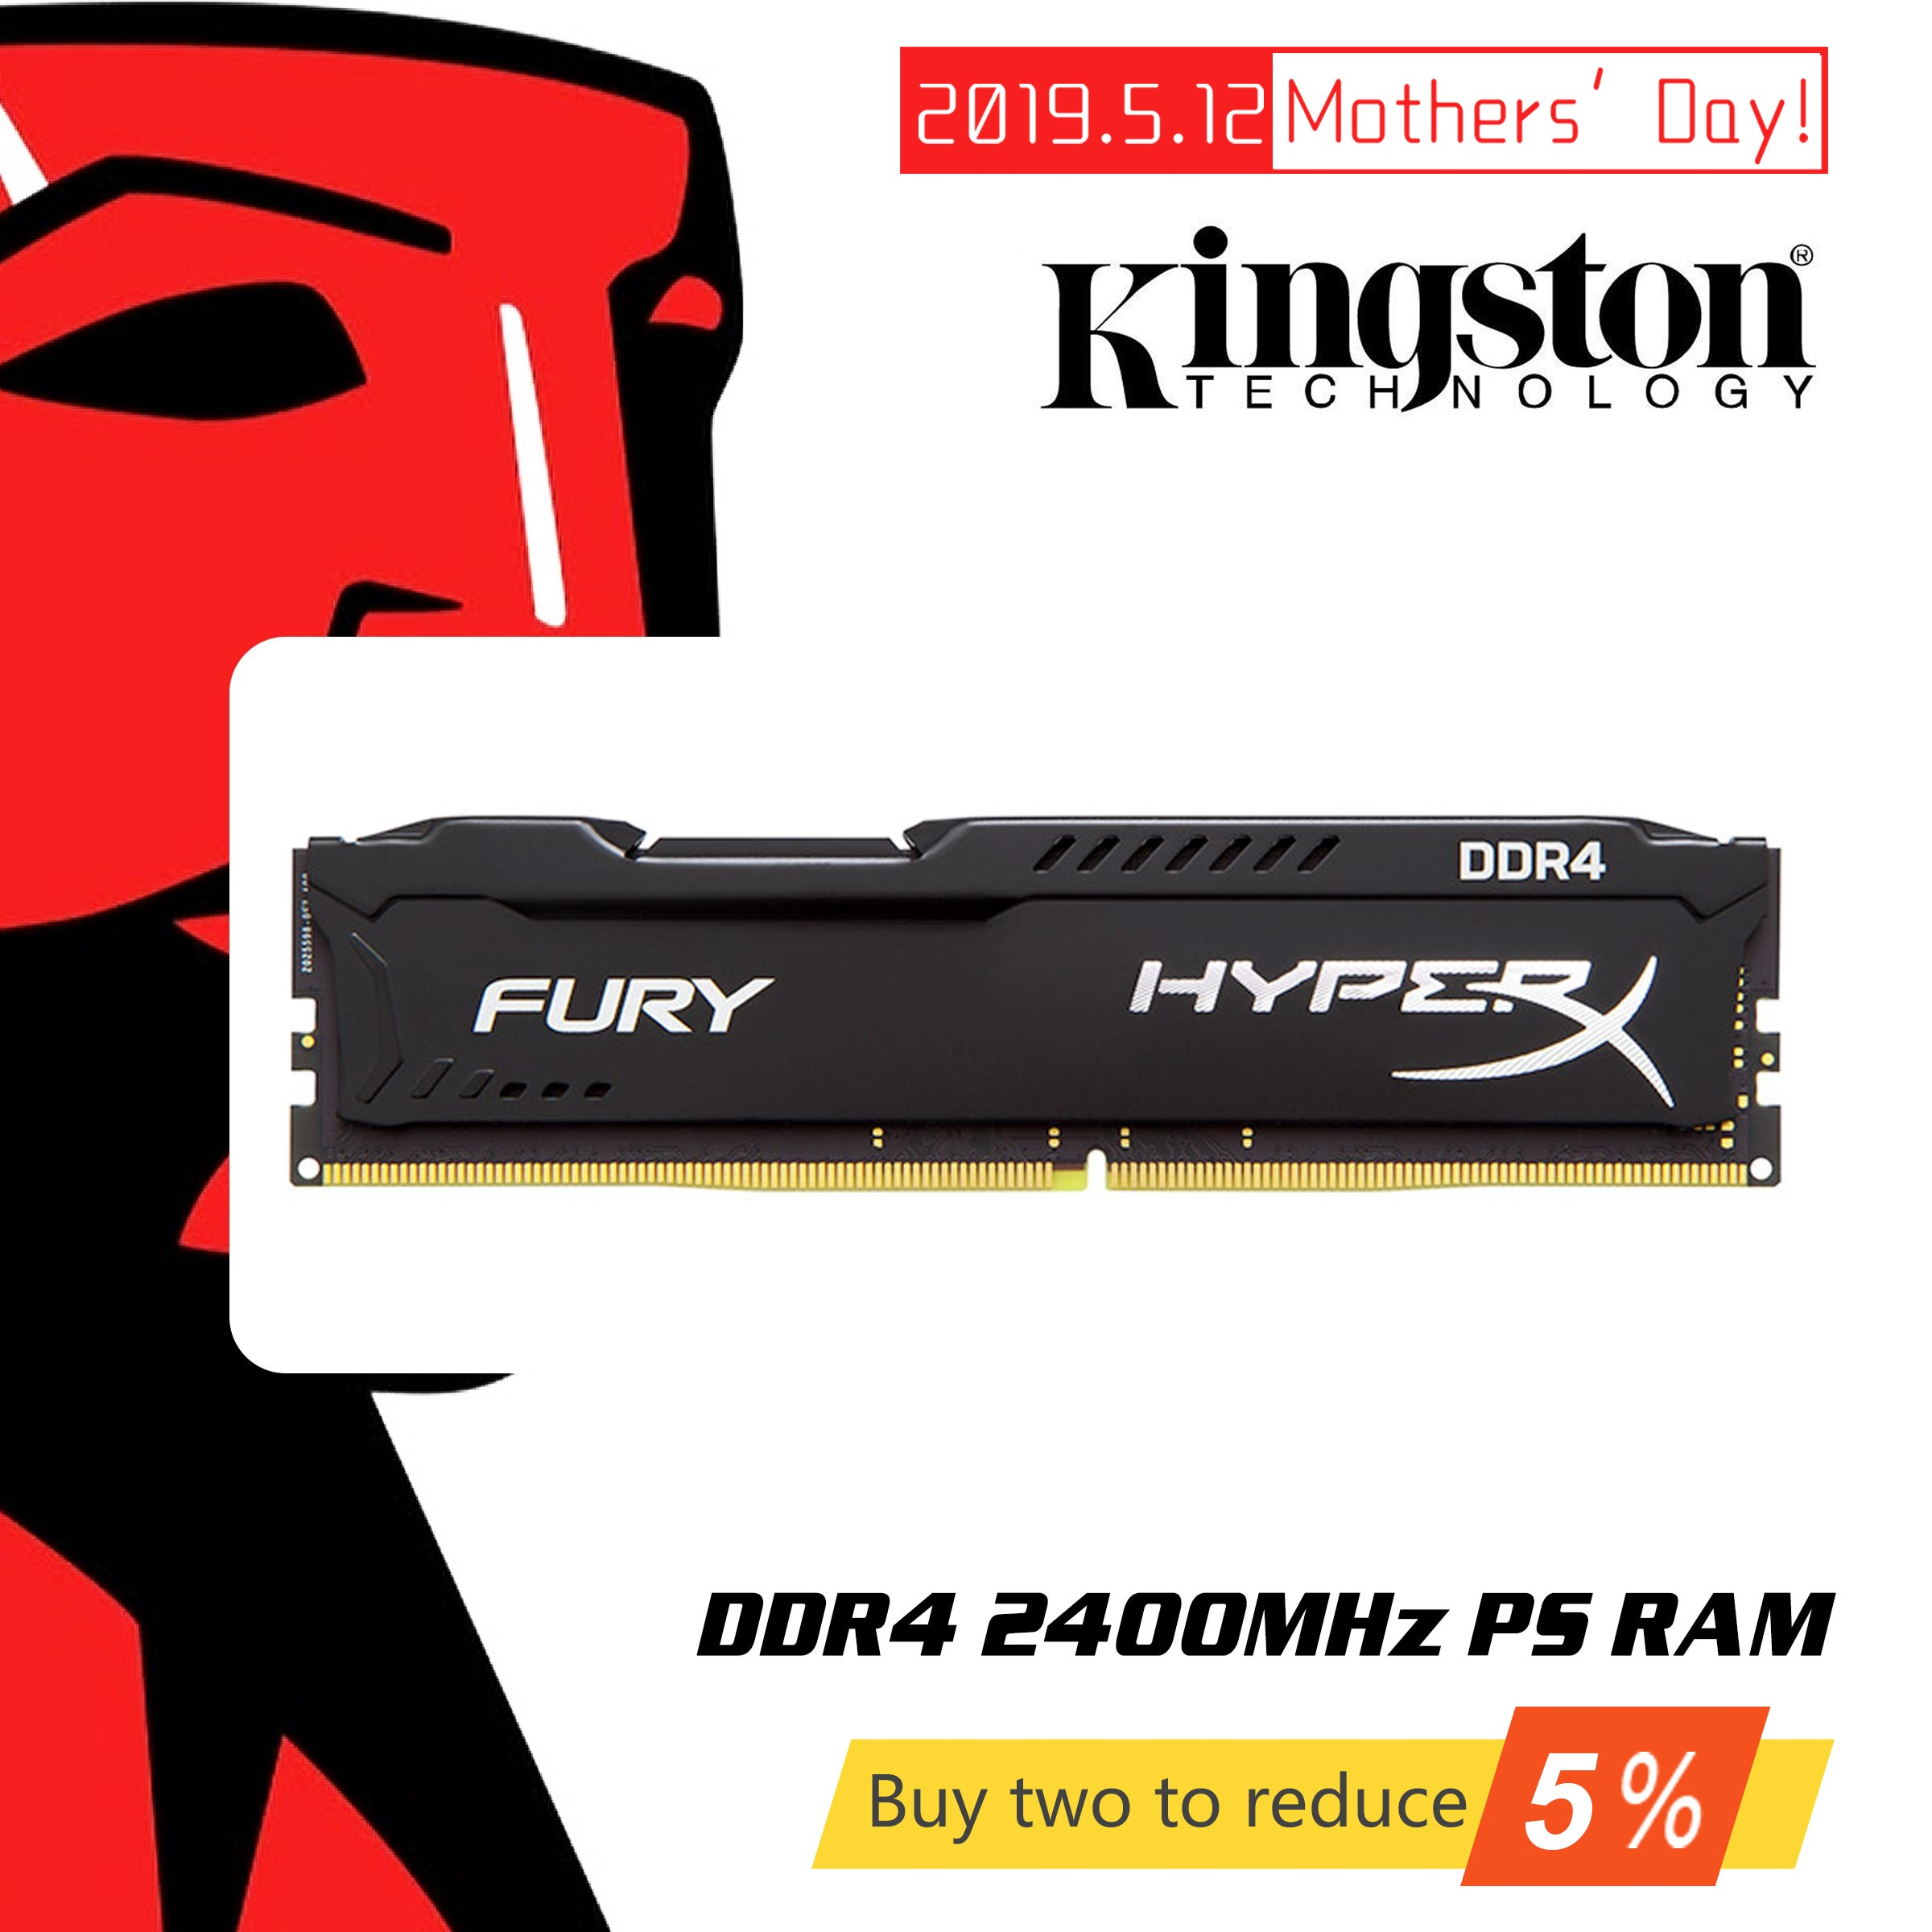 Original Kingston HyperX FURY 4GB 8GB 16GB Desktop Game RAM Memory DDR4 2400MHz CL15 DIMM 288-pin Internal Memoria For GamingOriginal Kingston HyperX FURY 4GB 8GB 16GB Desktop Game RAM Memory DDR4 2400MHz CL15 DIMM 288-pin Internal Memoria For Gaming